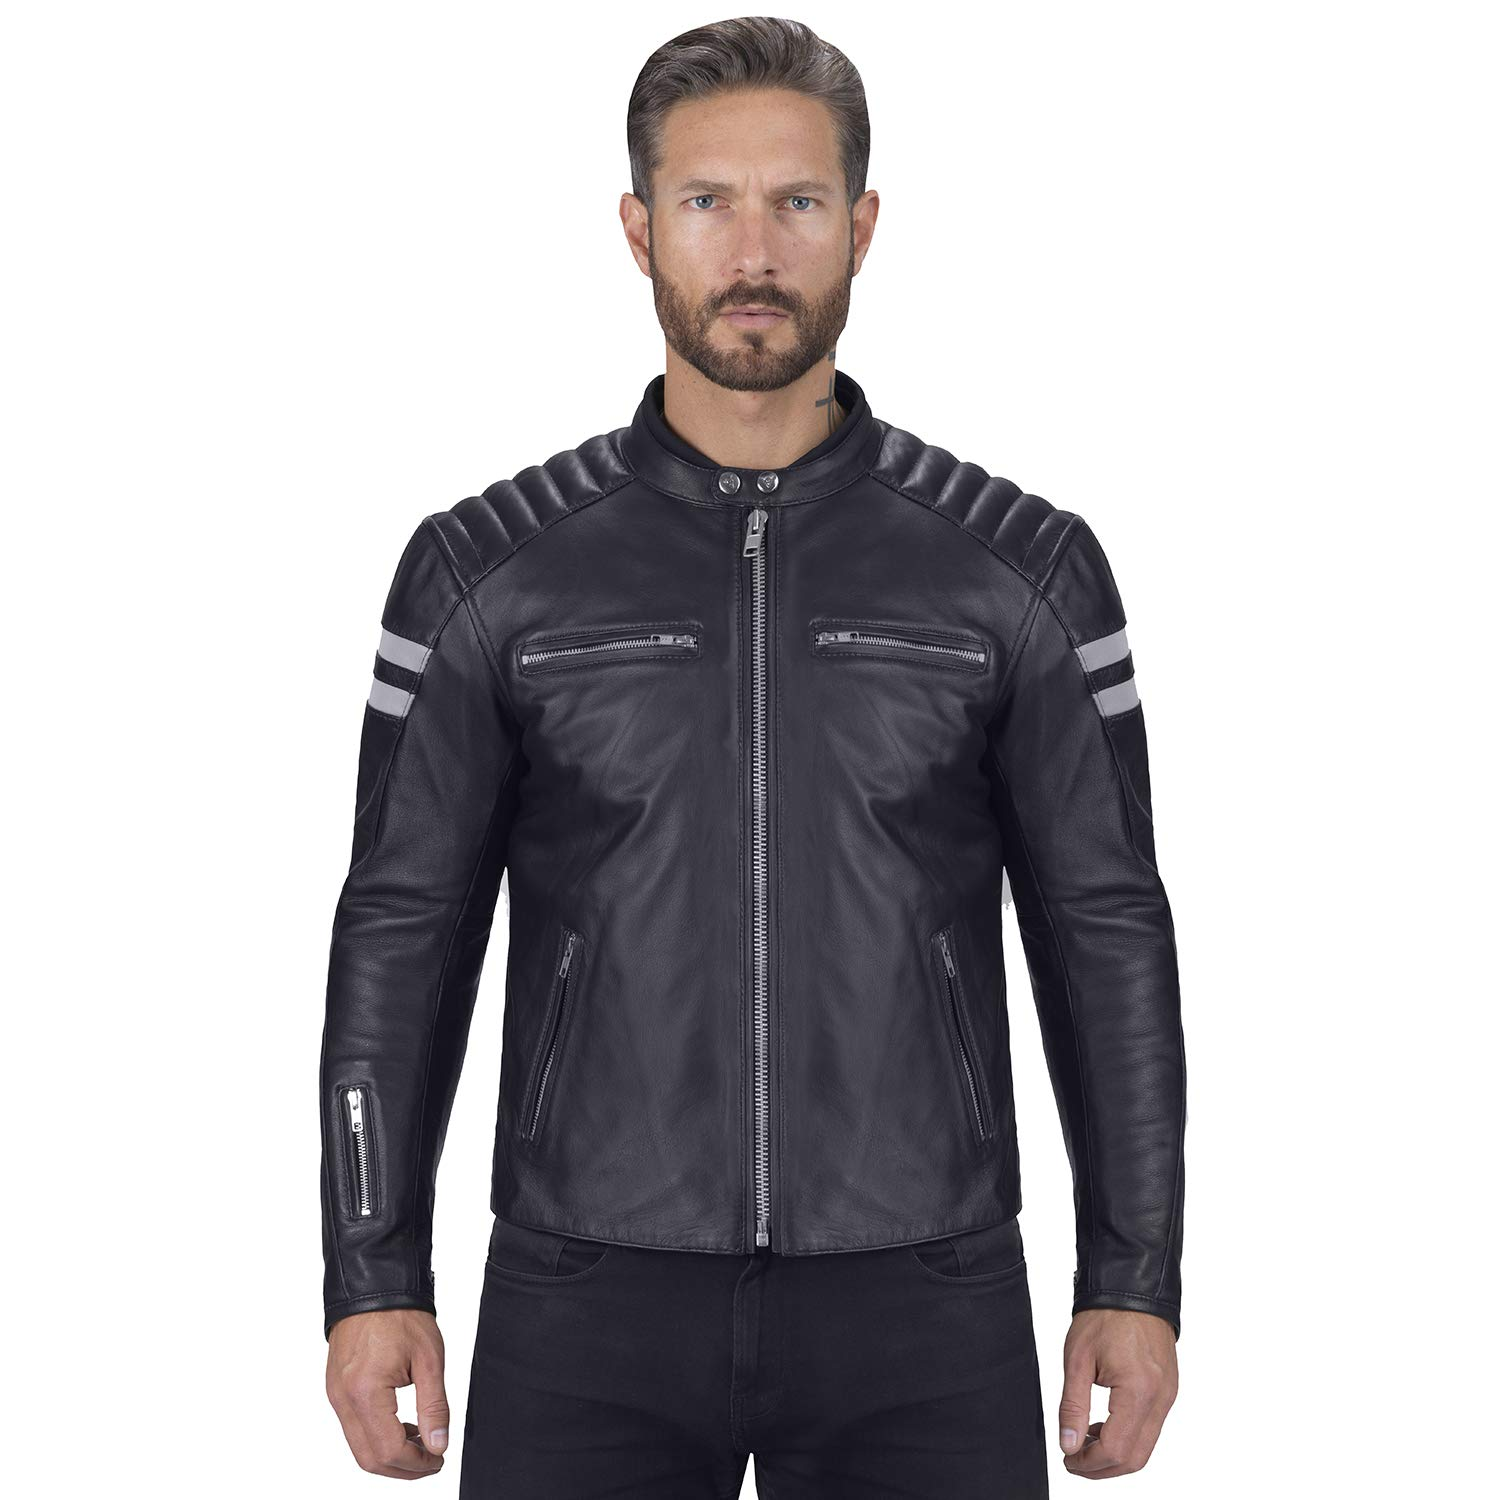 Viking Cycle Bloodaxe Leather Motorcycle Jacket for Men (X-Small)